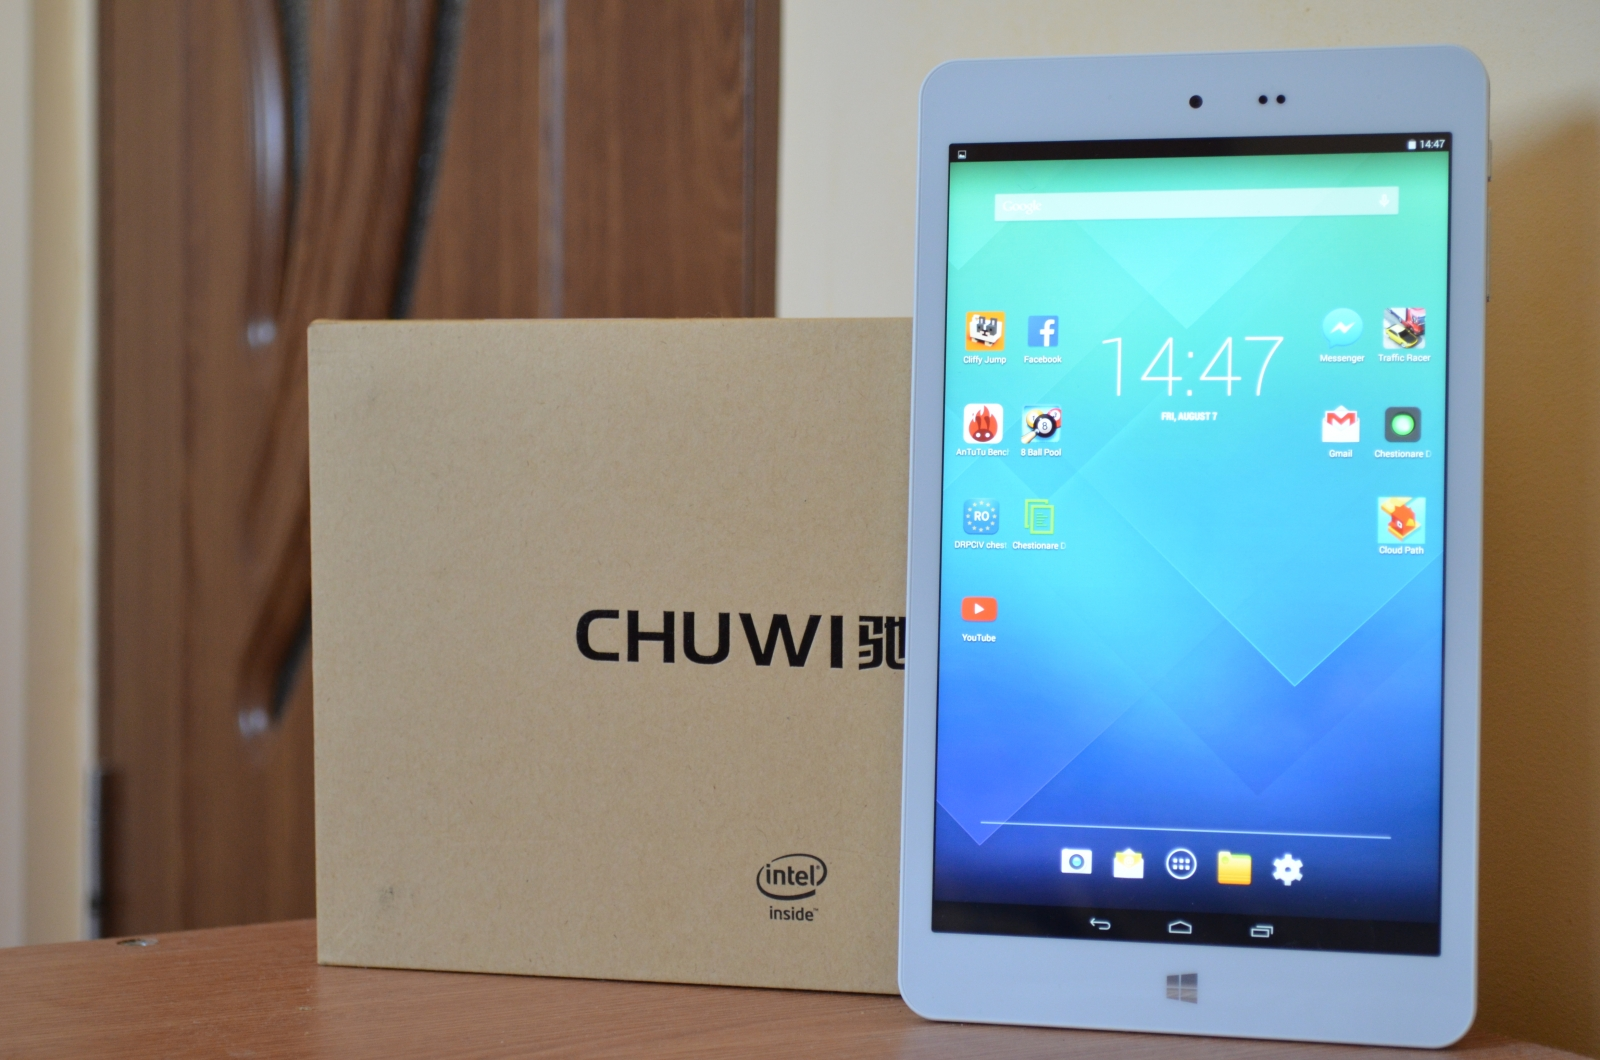 Chuwi Hi8 Pro on the table next to the packaging